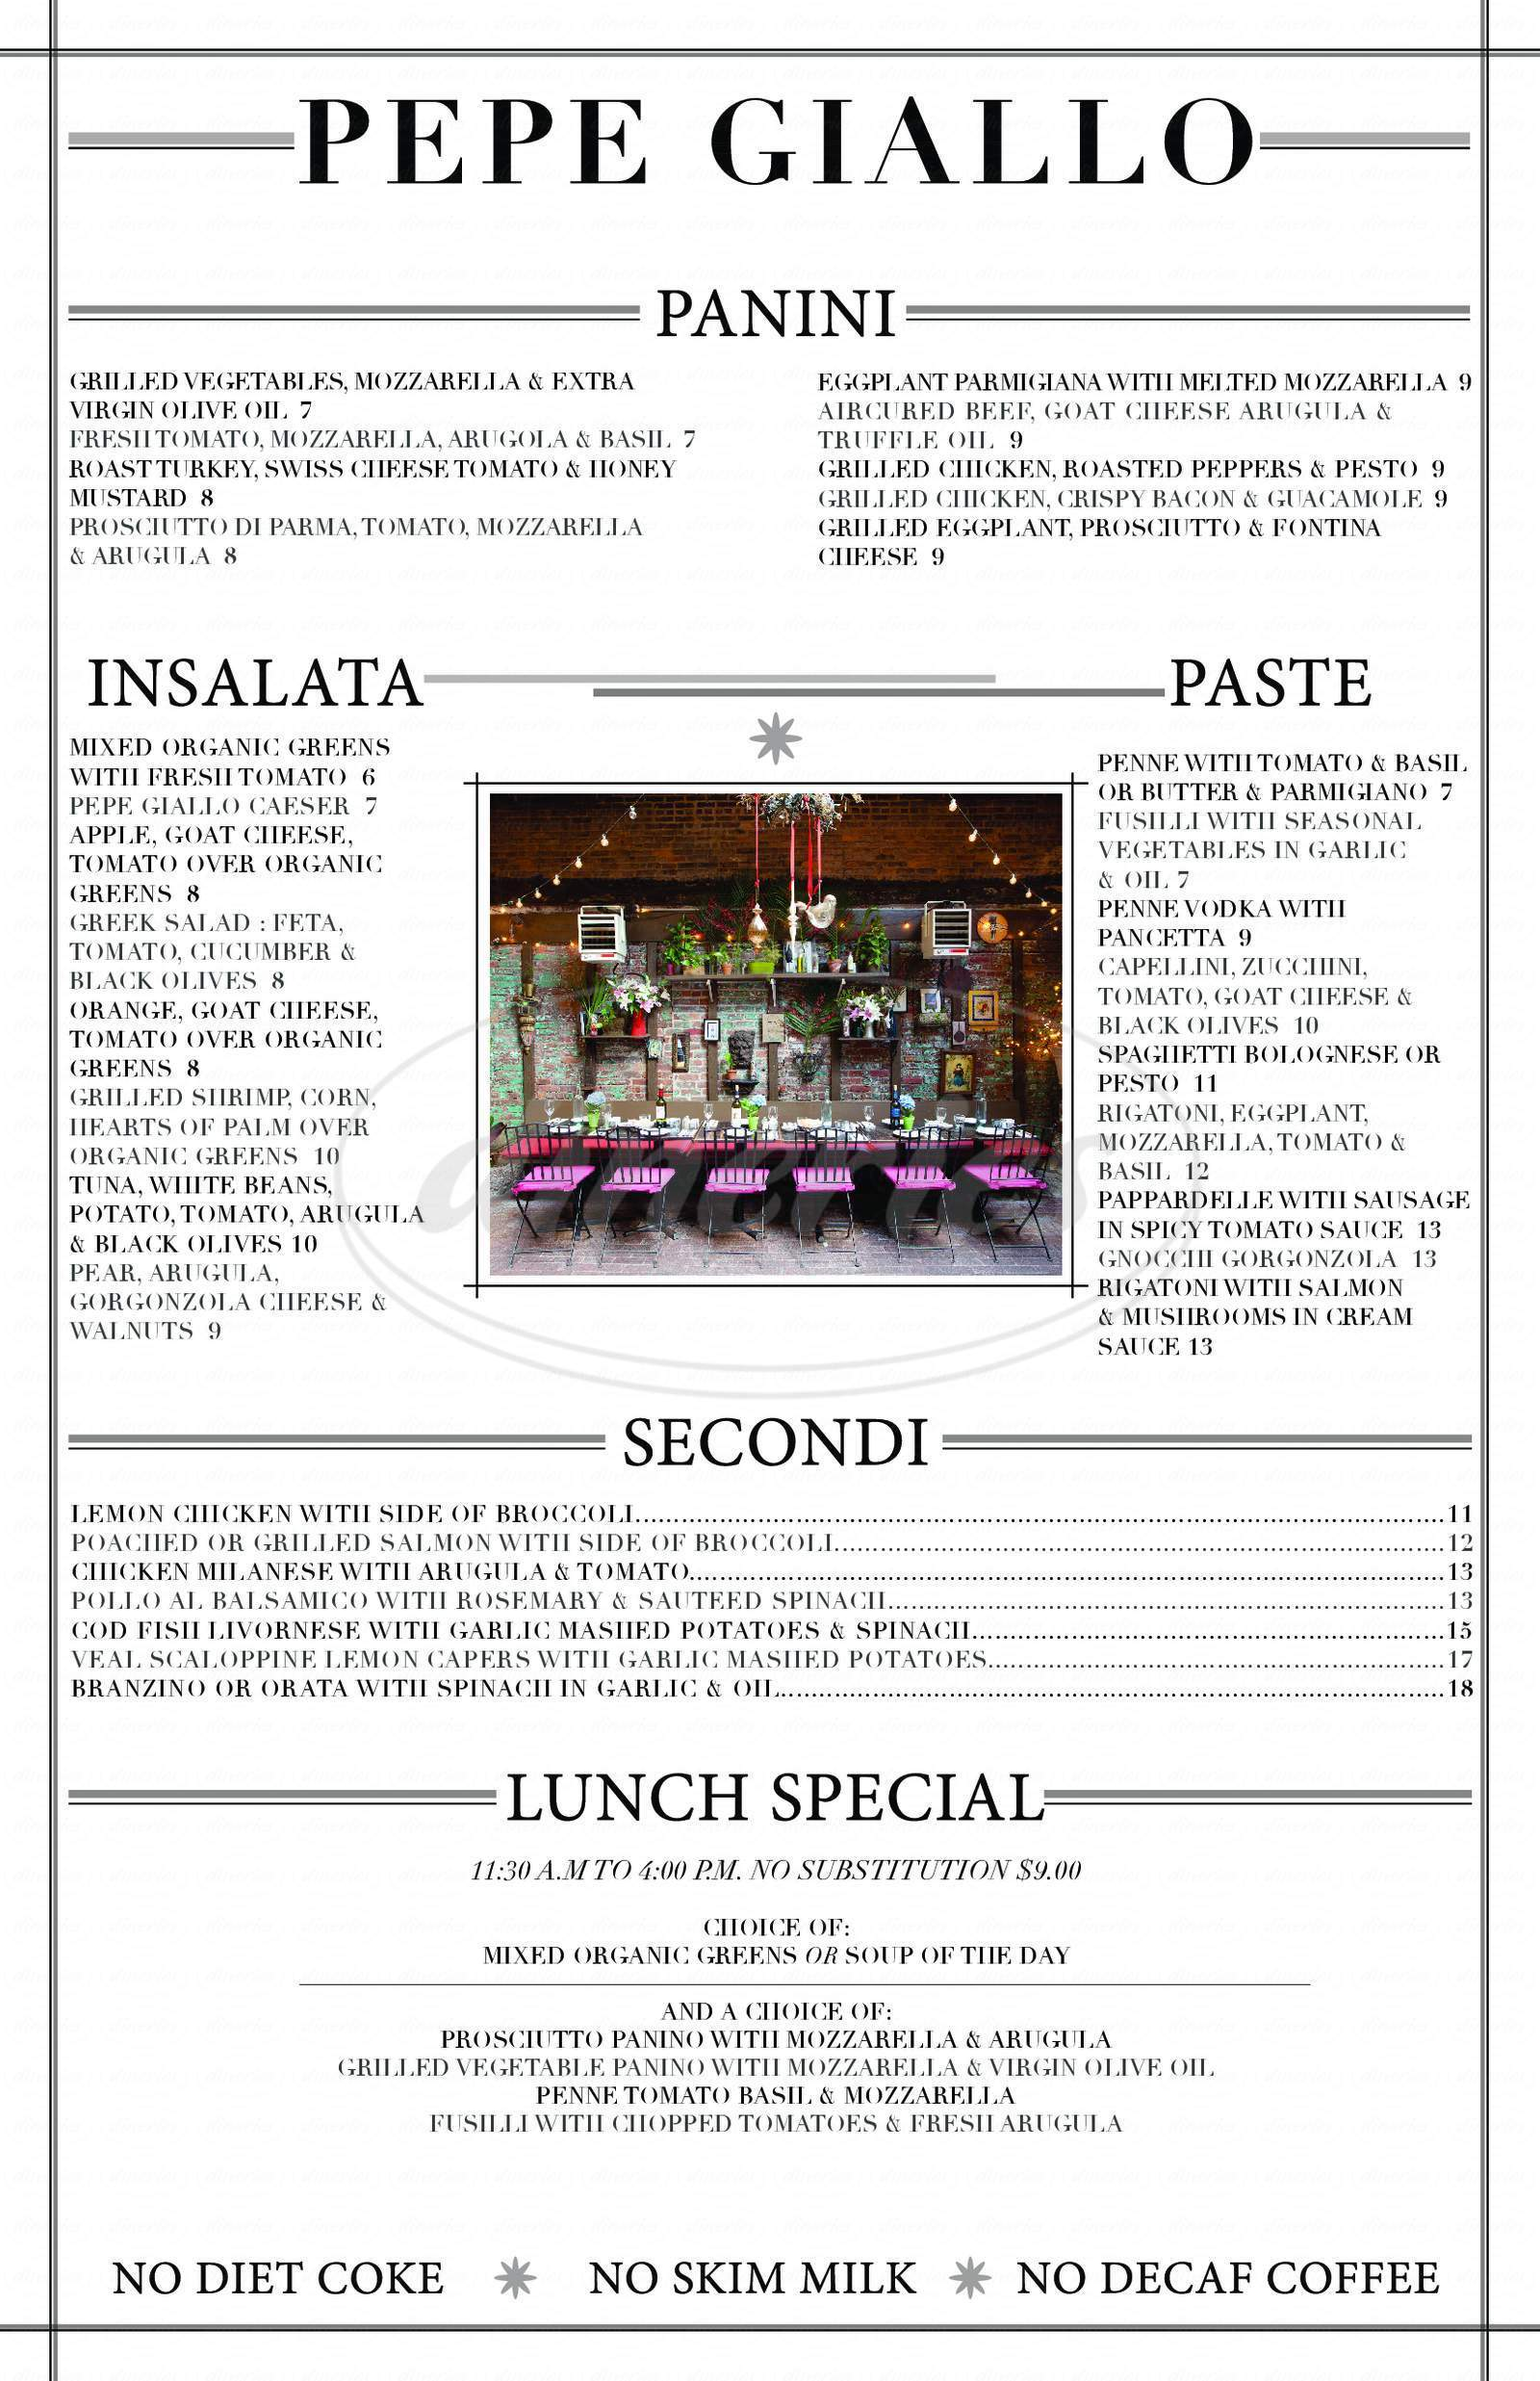 menu for Pepe Giallo